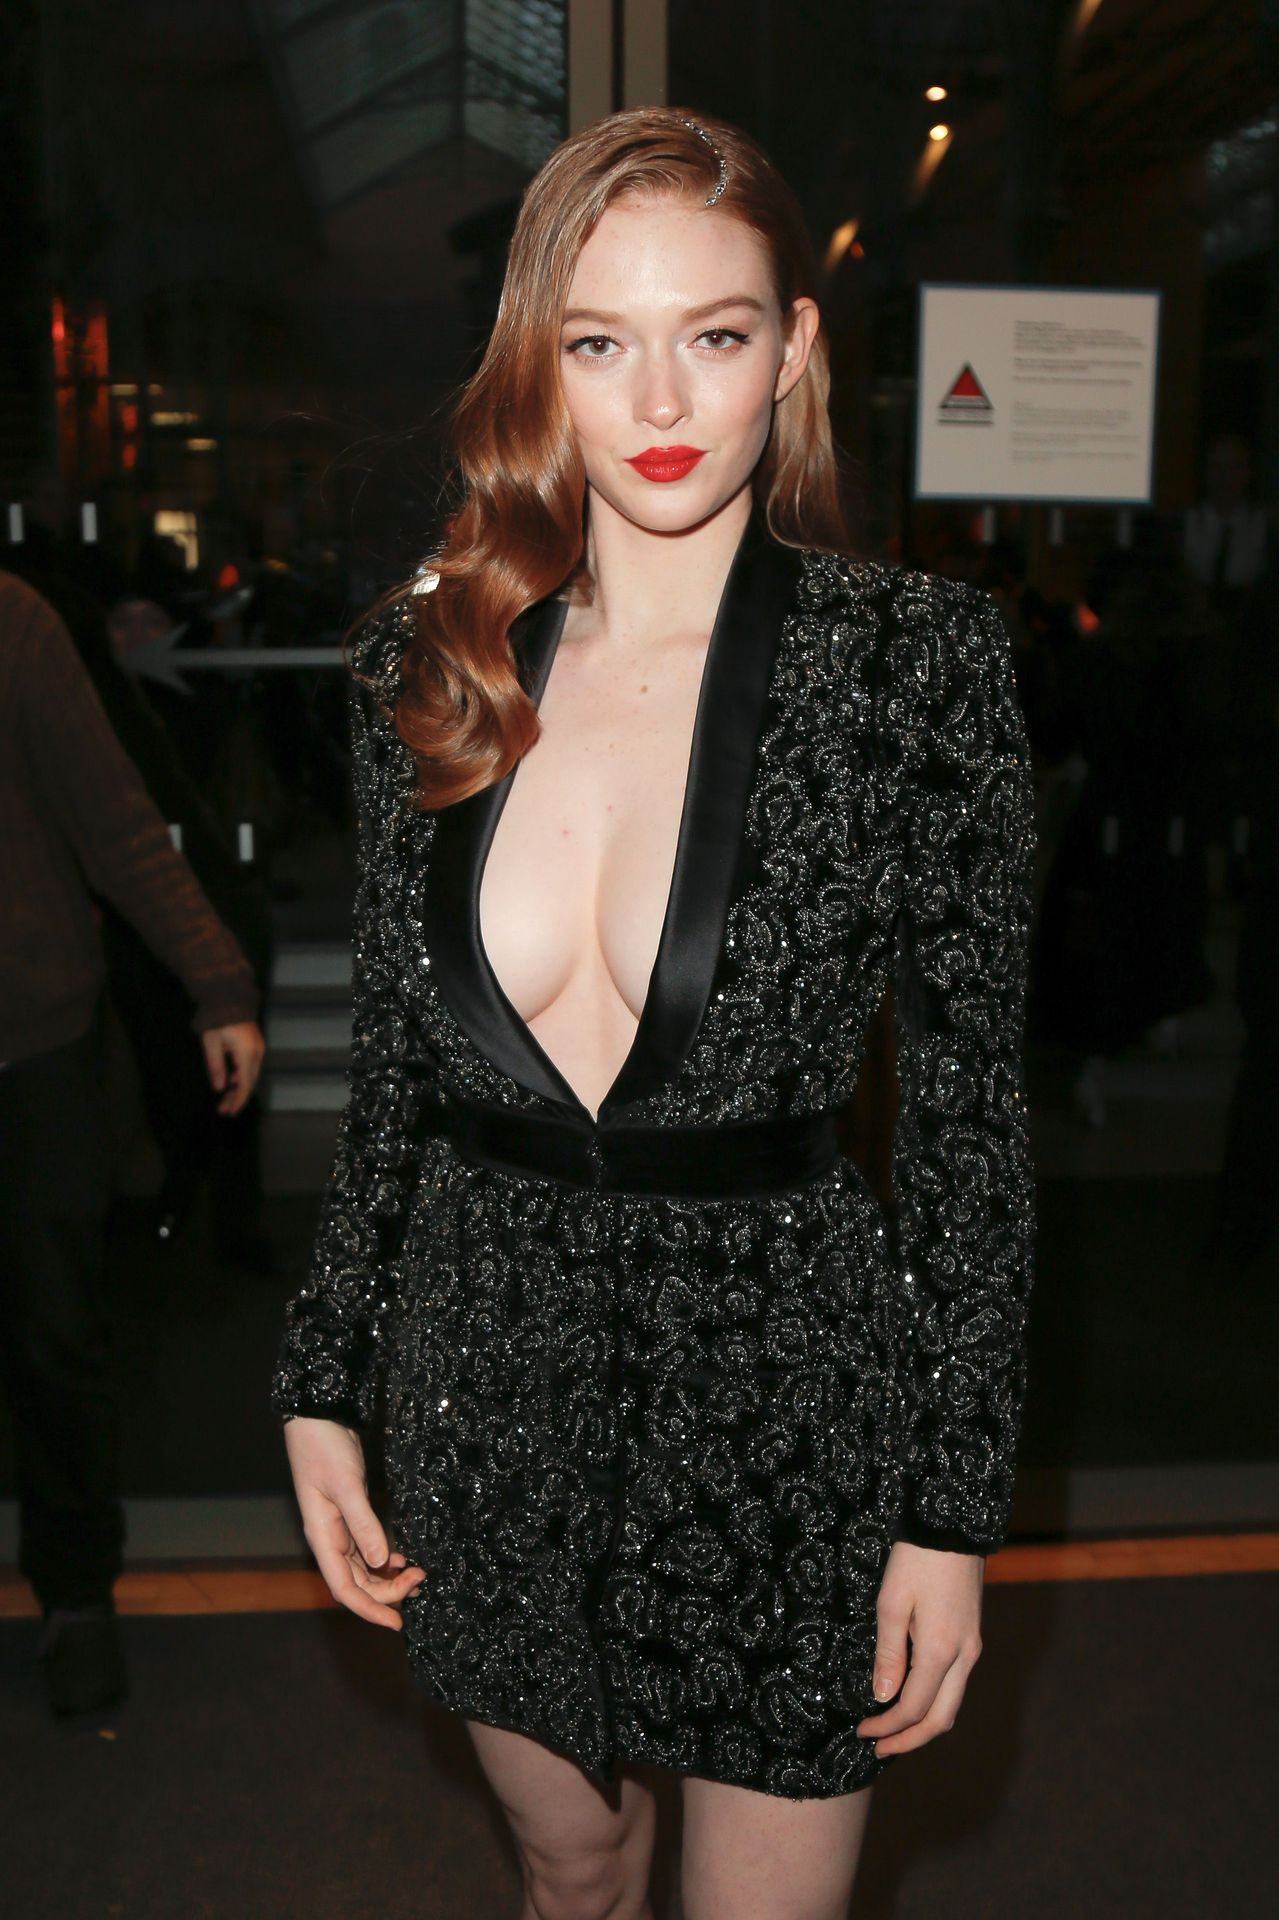 Larsen Thompson Wows With Her Tits At The Fashion Show 0007